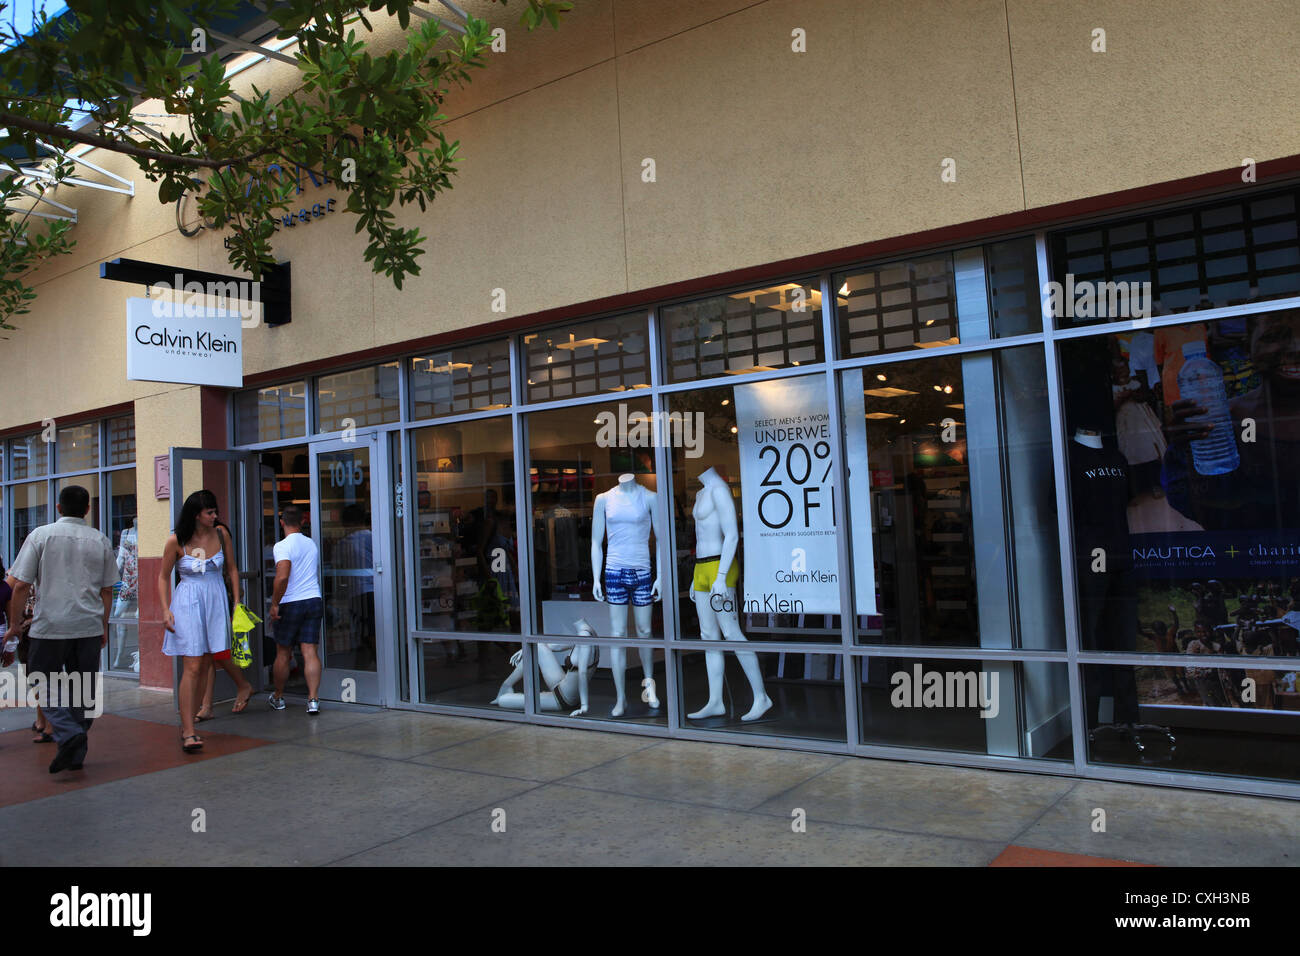 df95029a7 Shoppers walking into Calvin Klein store in Las Vegas North Premium Outlets  Shopping Mall